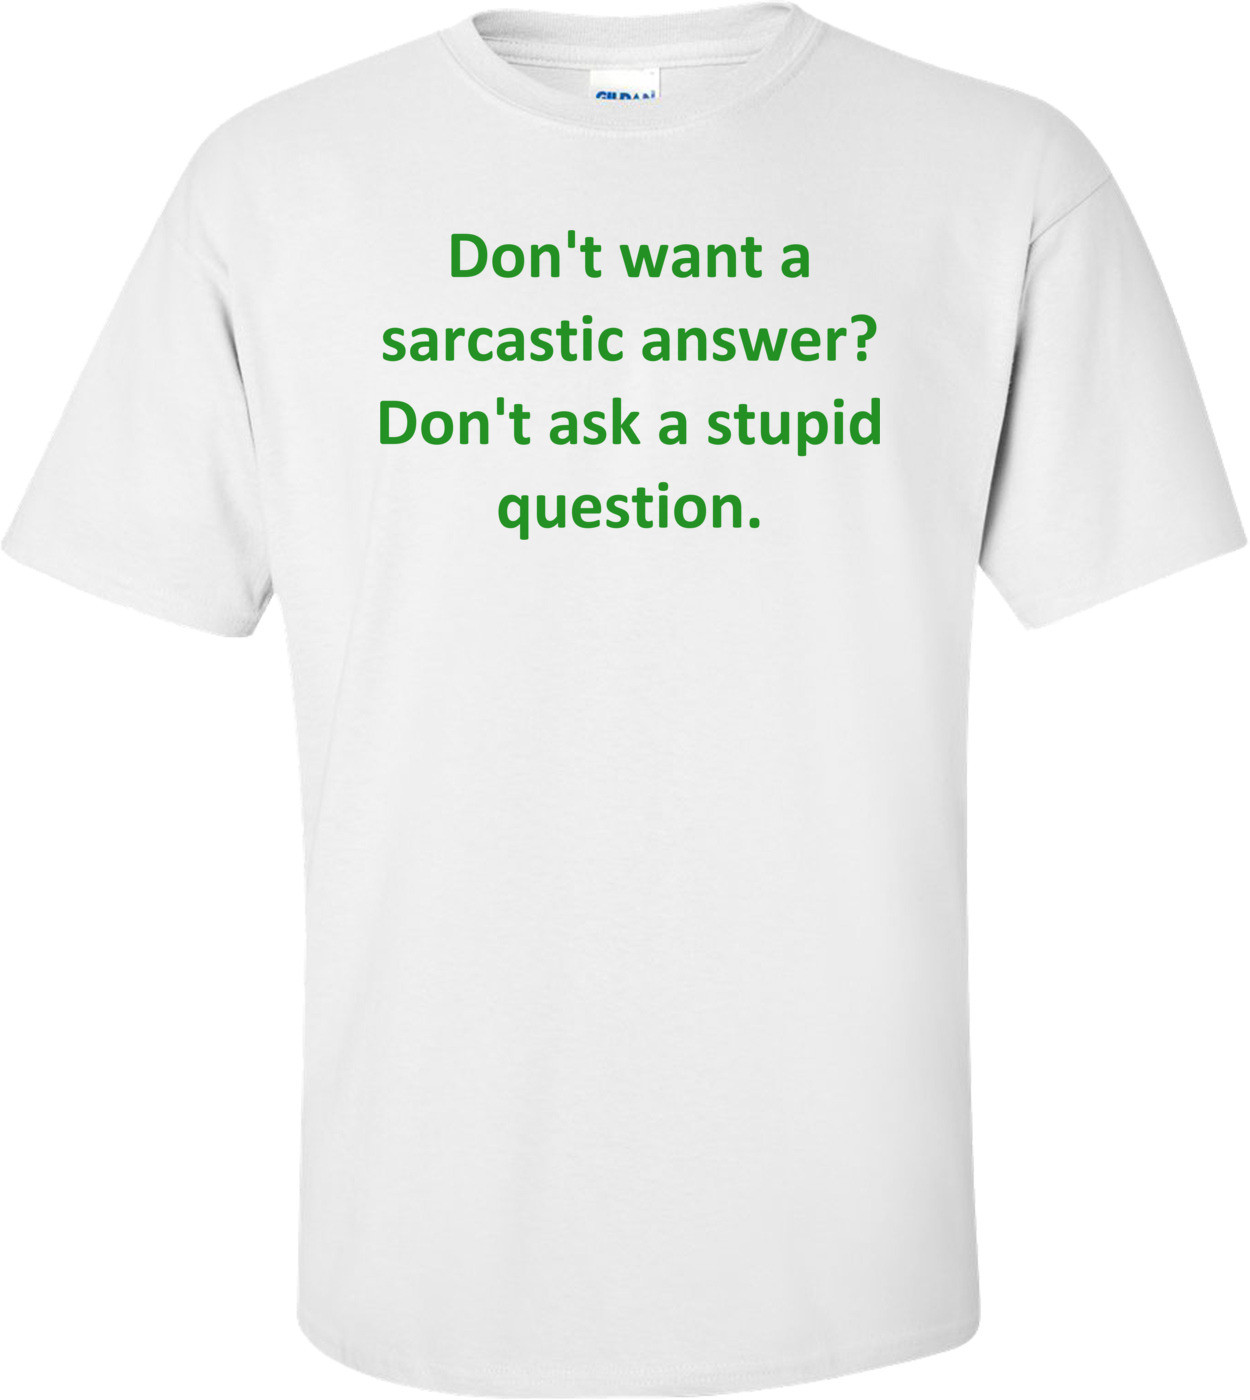 Don't want a sarcastic answer? Don't ask a stupid question. Shirt